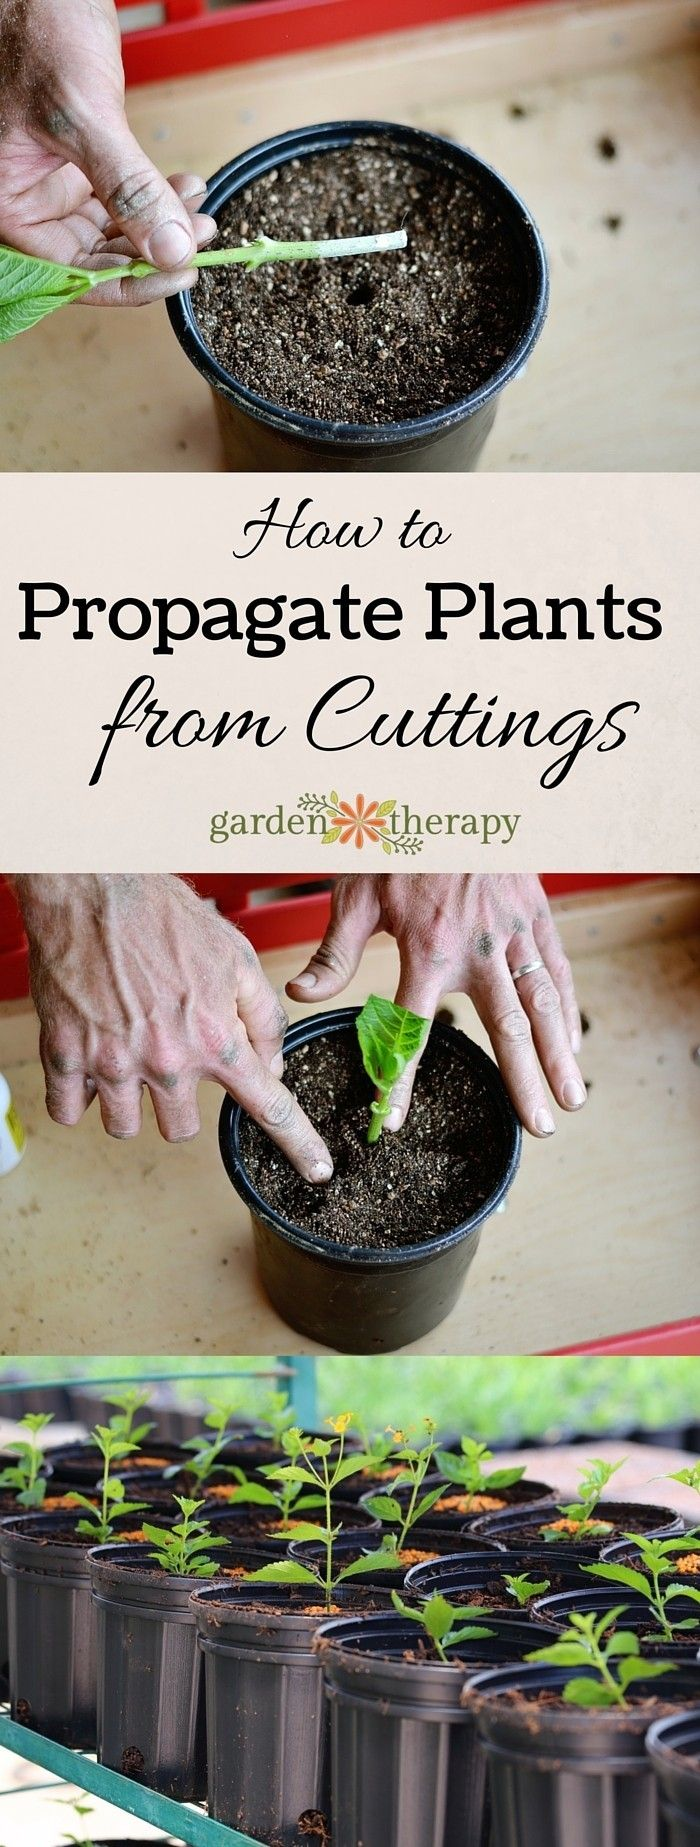 Expand your gardening by starting new plants from cuttings. Propagation your plants from cuttings is a valuable skill to have as your garden…